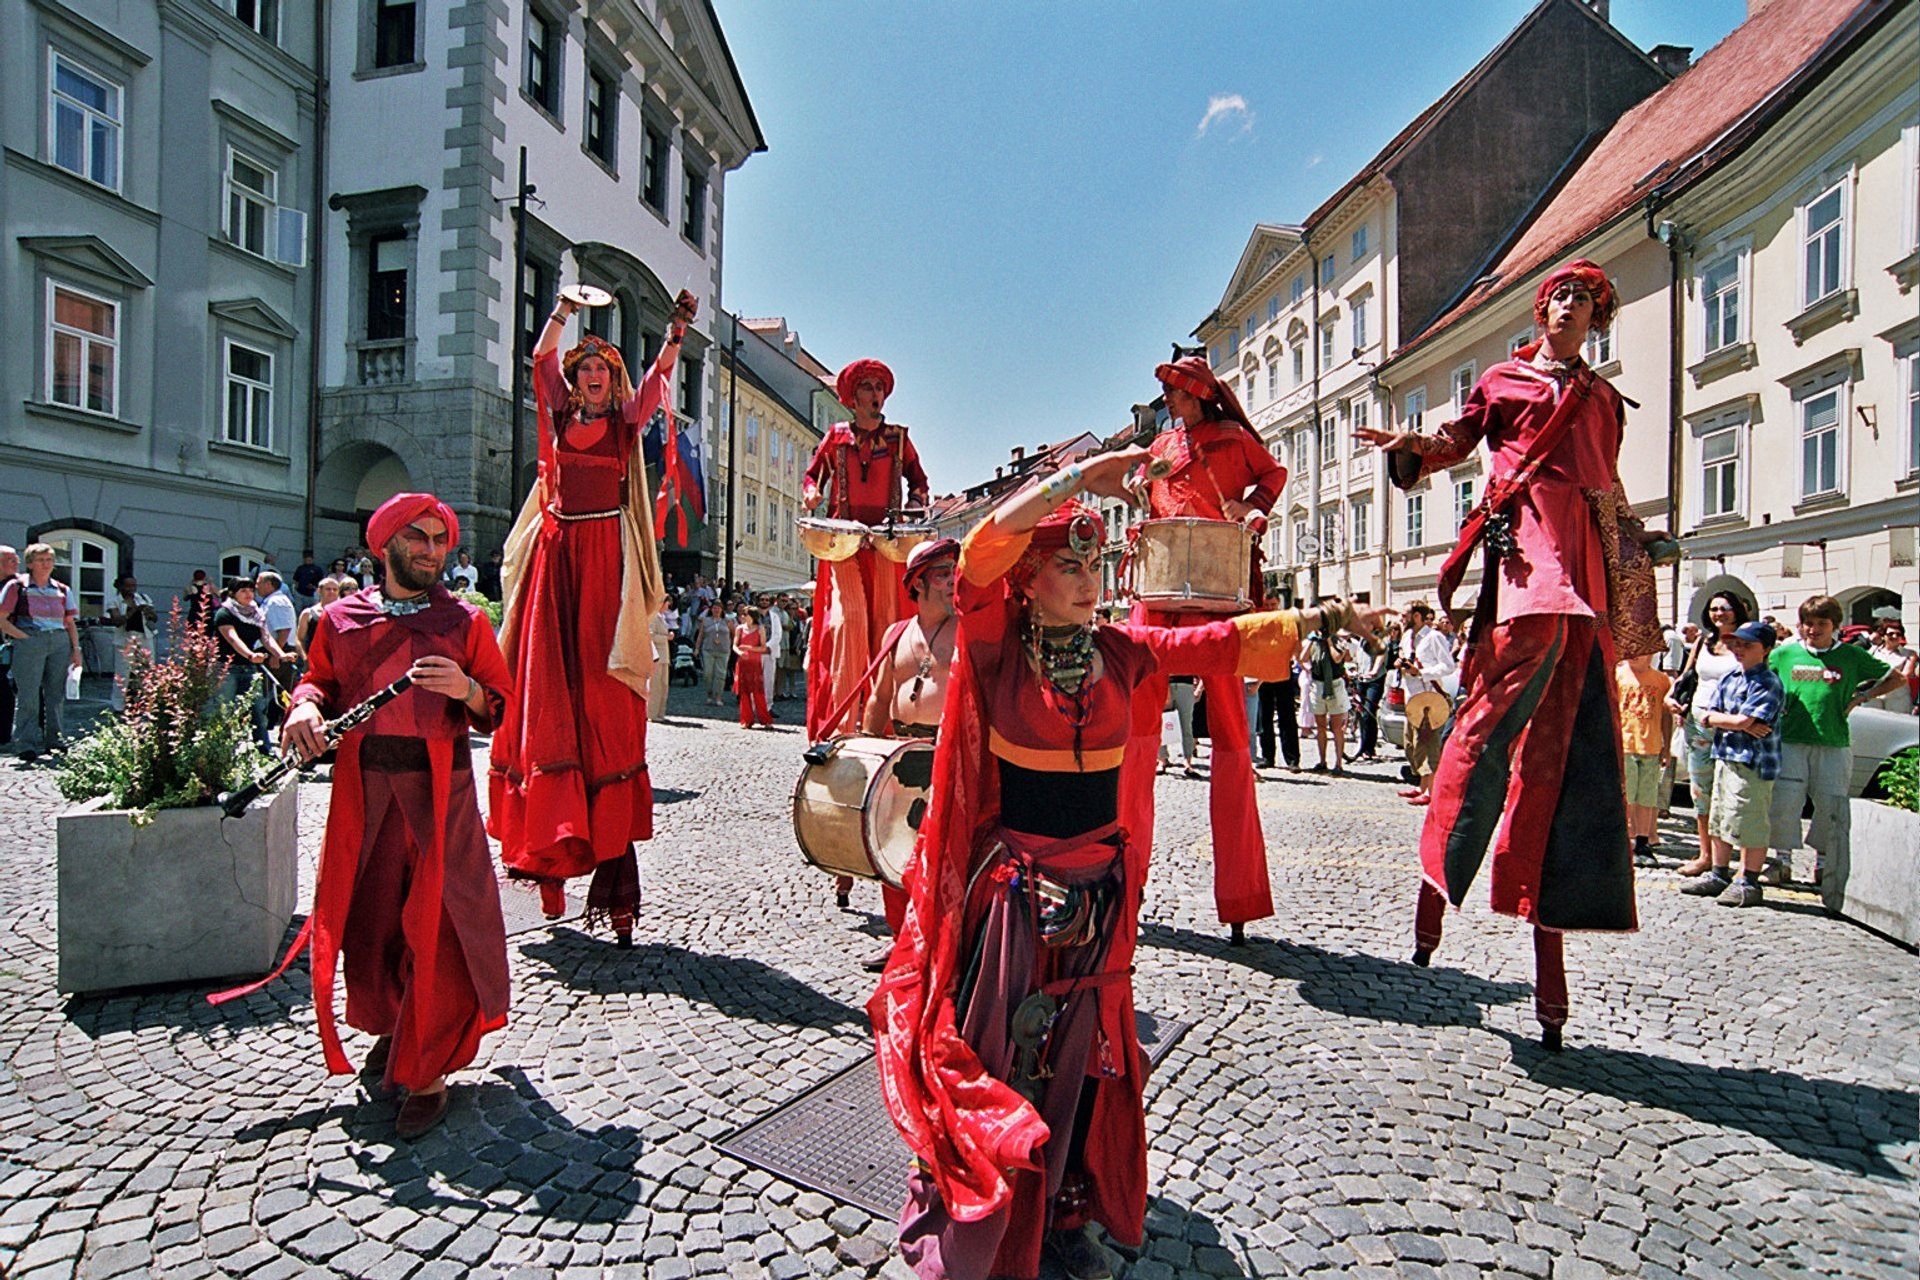 Ana Desetnica International Street Theatre Festival in Slovenia 2019 - Best Time